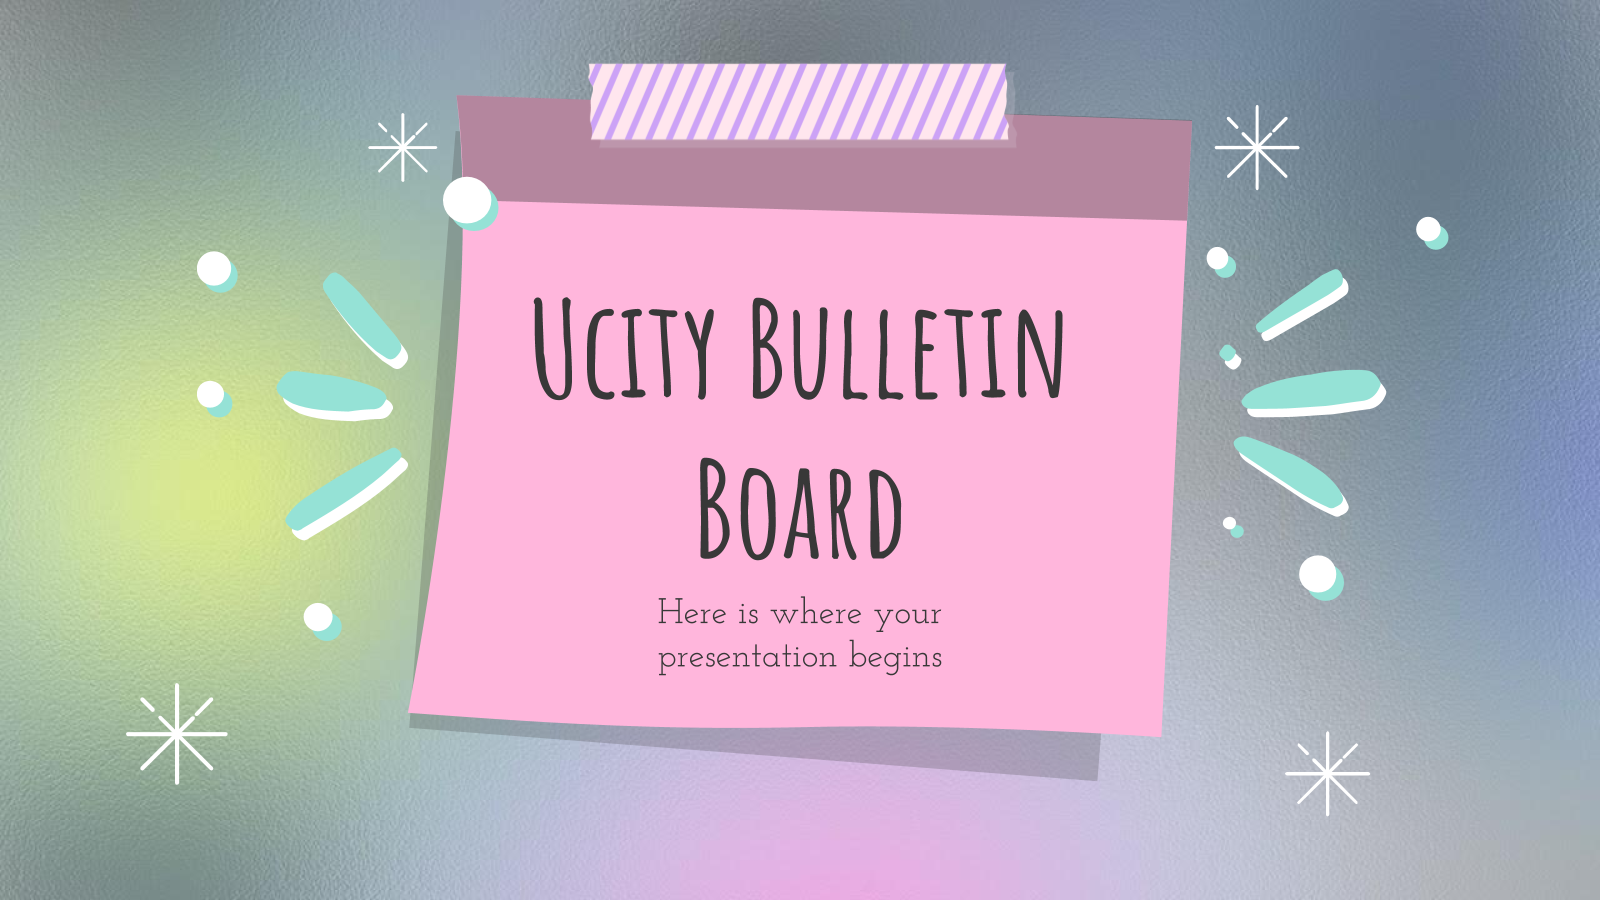 Ucity Bulletin Board presentation template